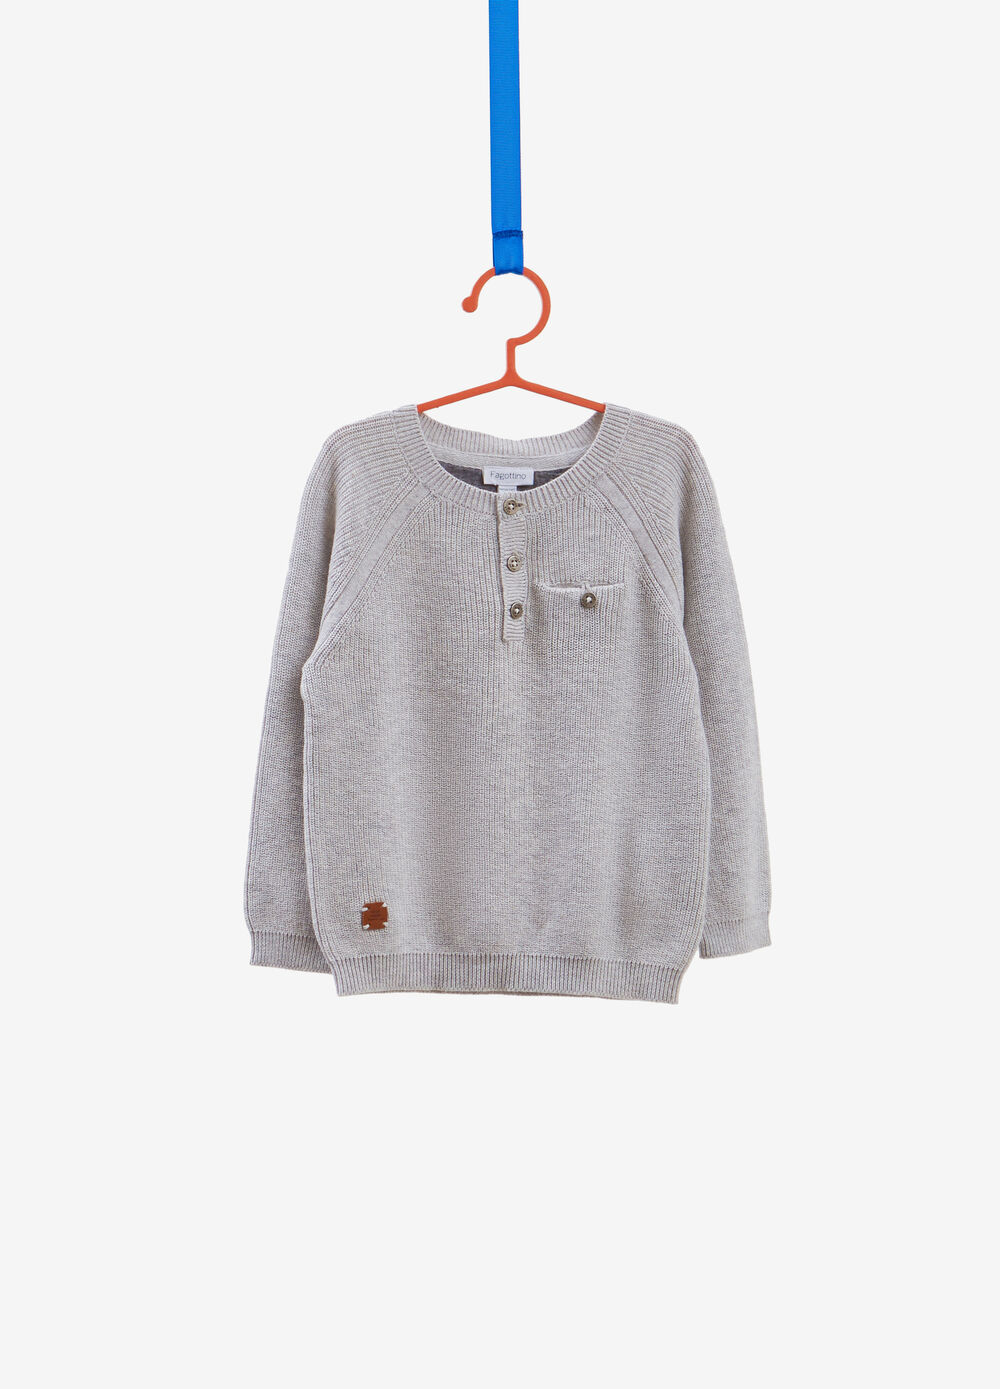 Knitted cotton pullover with pocket